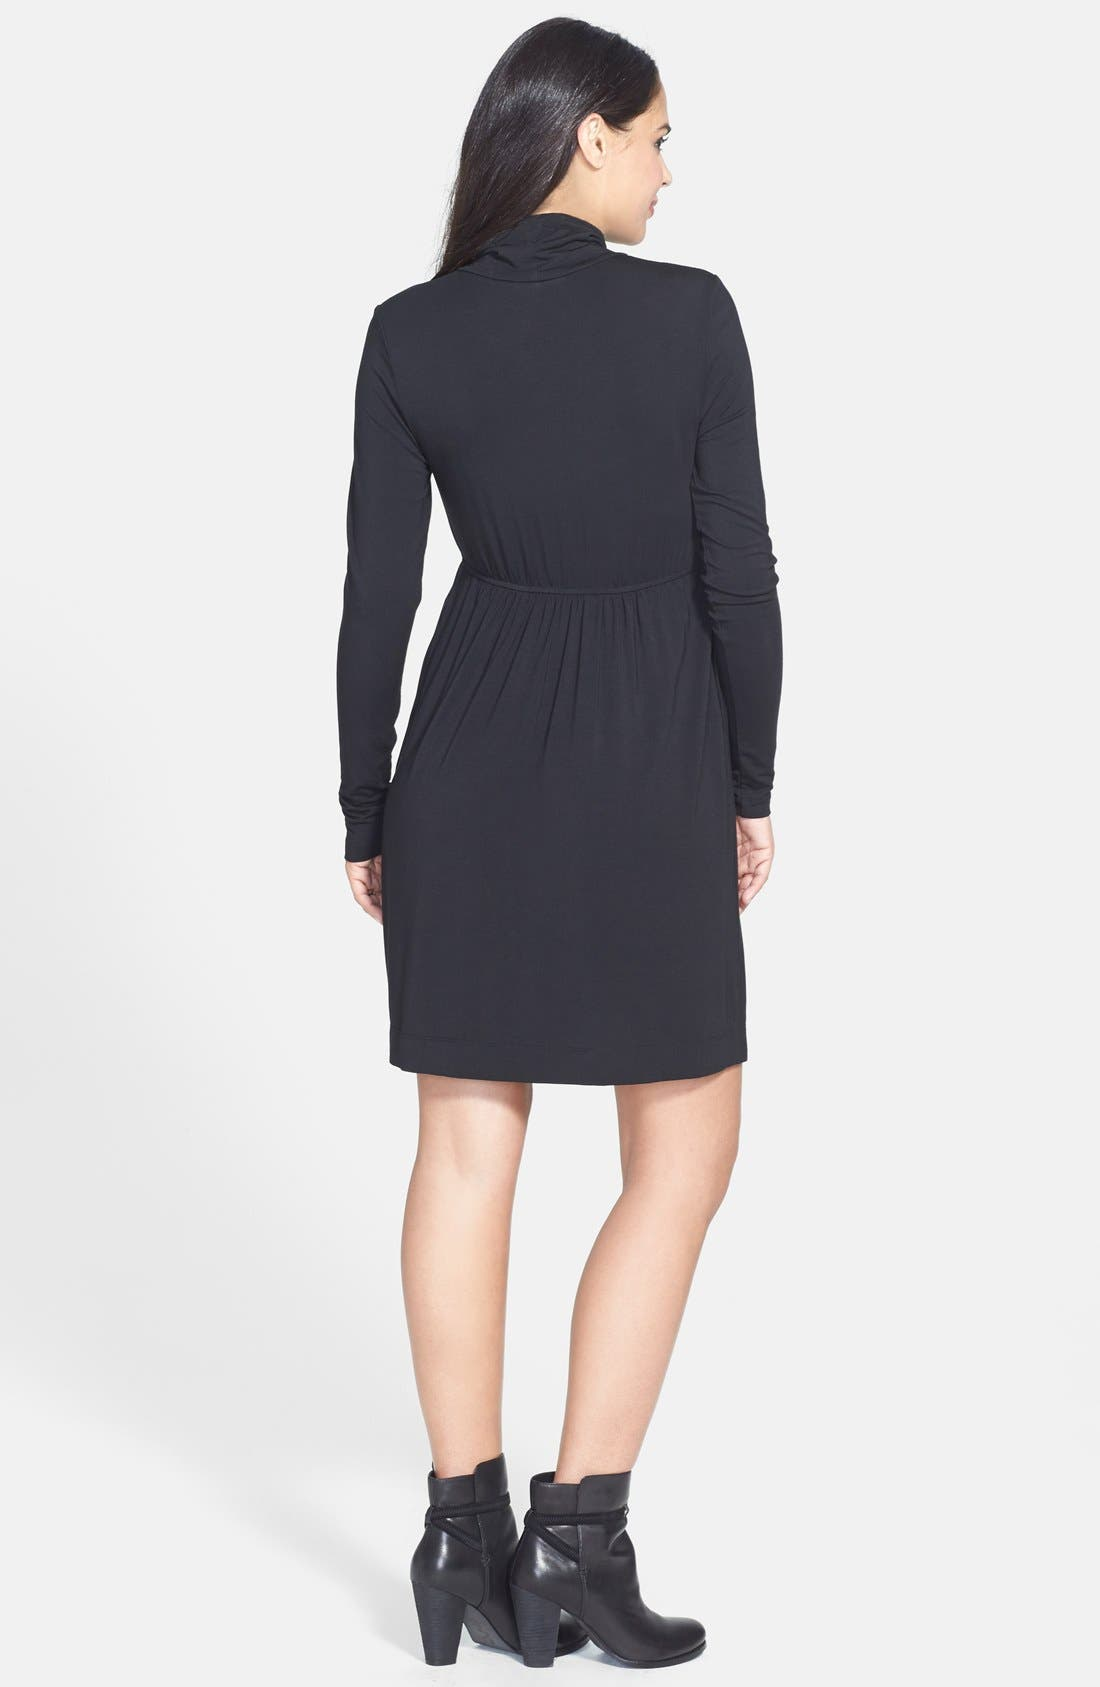 TART MATERNITY, 'Rhiannon' Turtleneck Fit & Flare Maternity Dress, Alternate thumbnail 4, color, BLACK